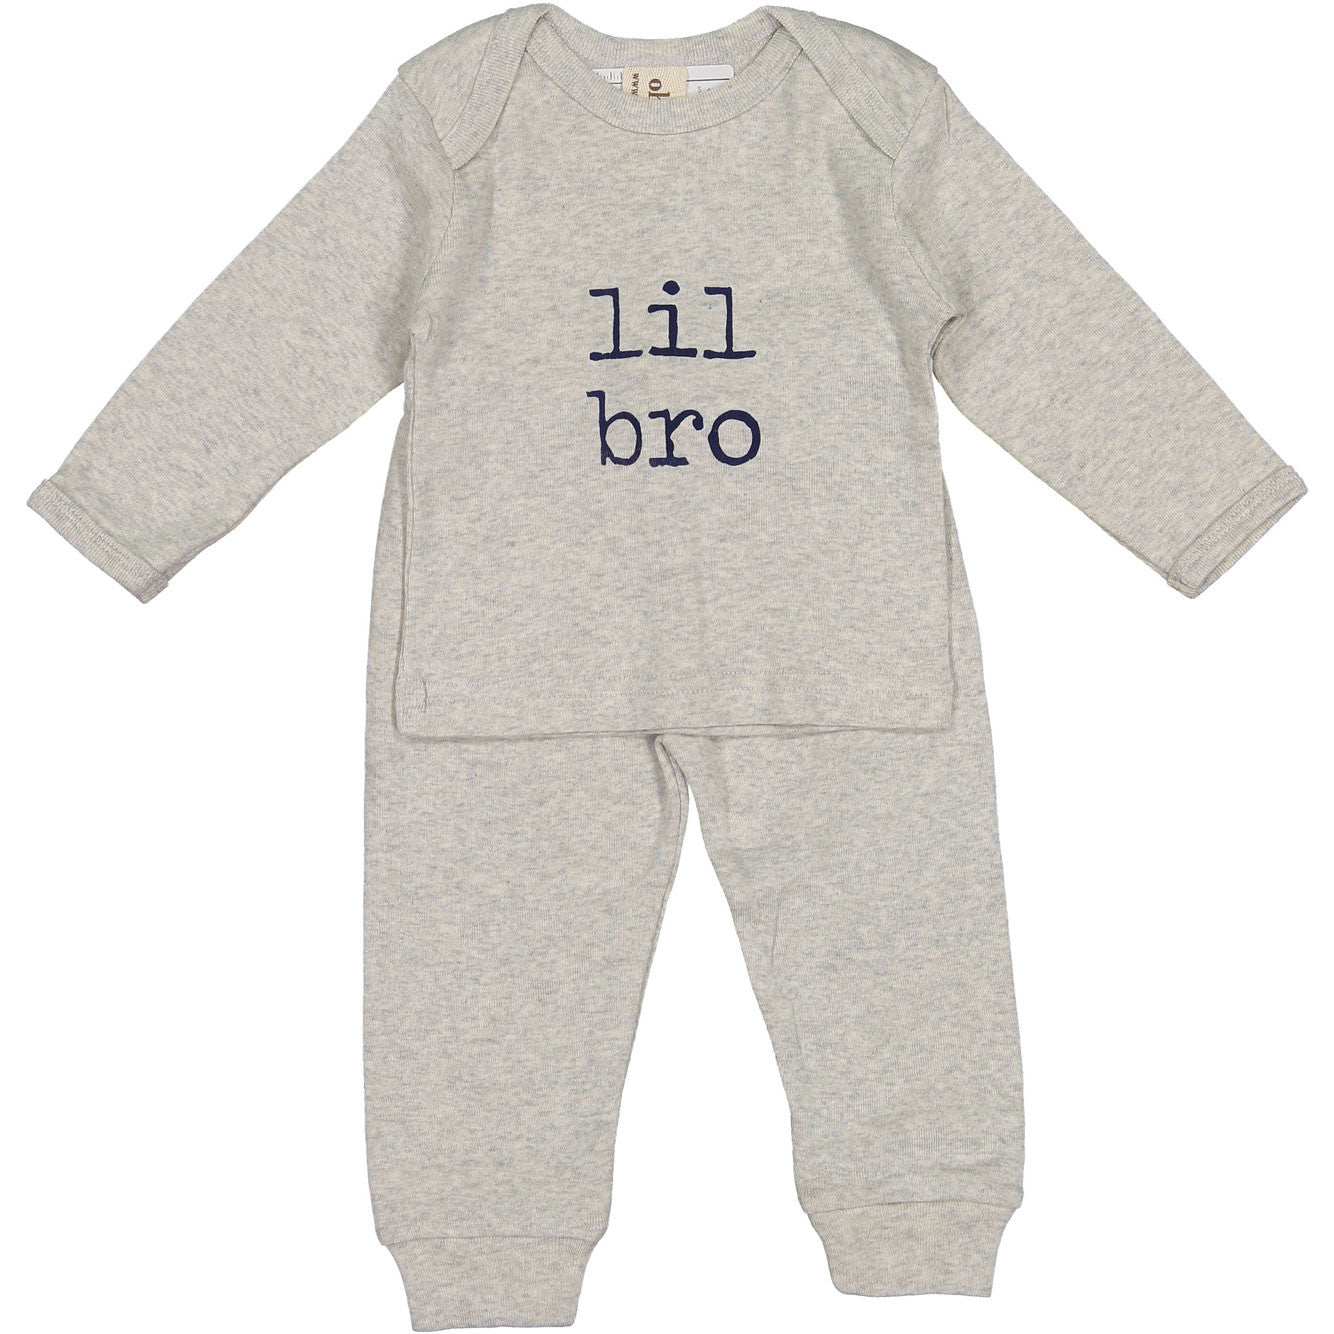 Oh Baby Oatmeal 'Lil Bro' Set